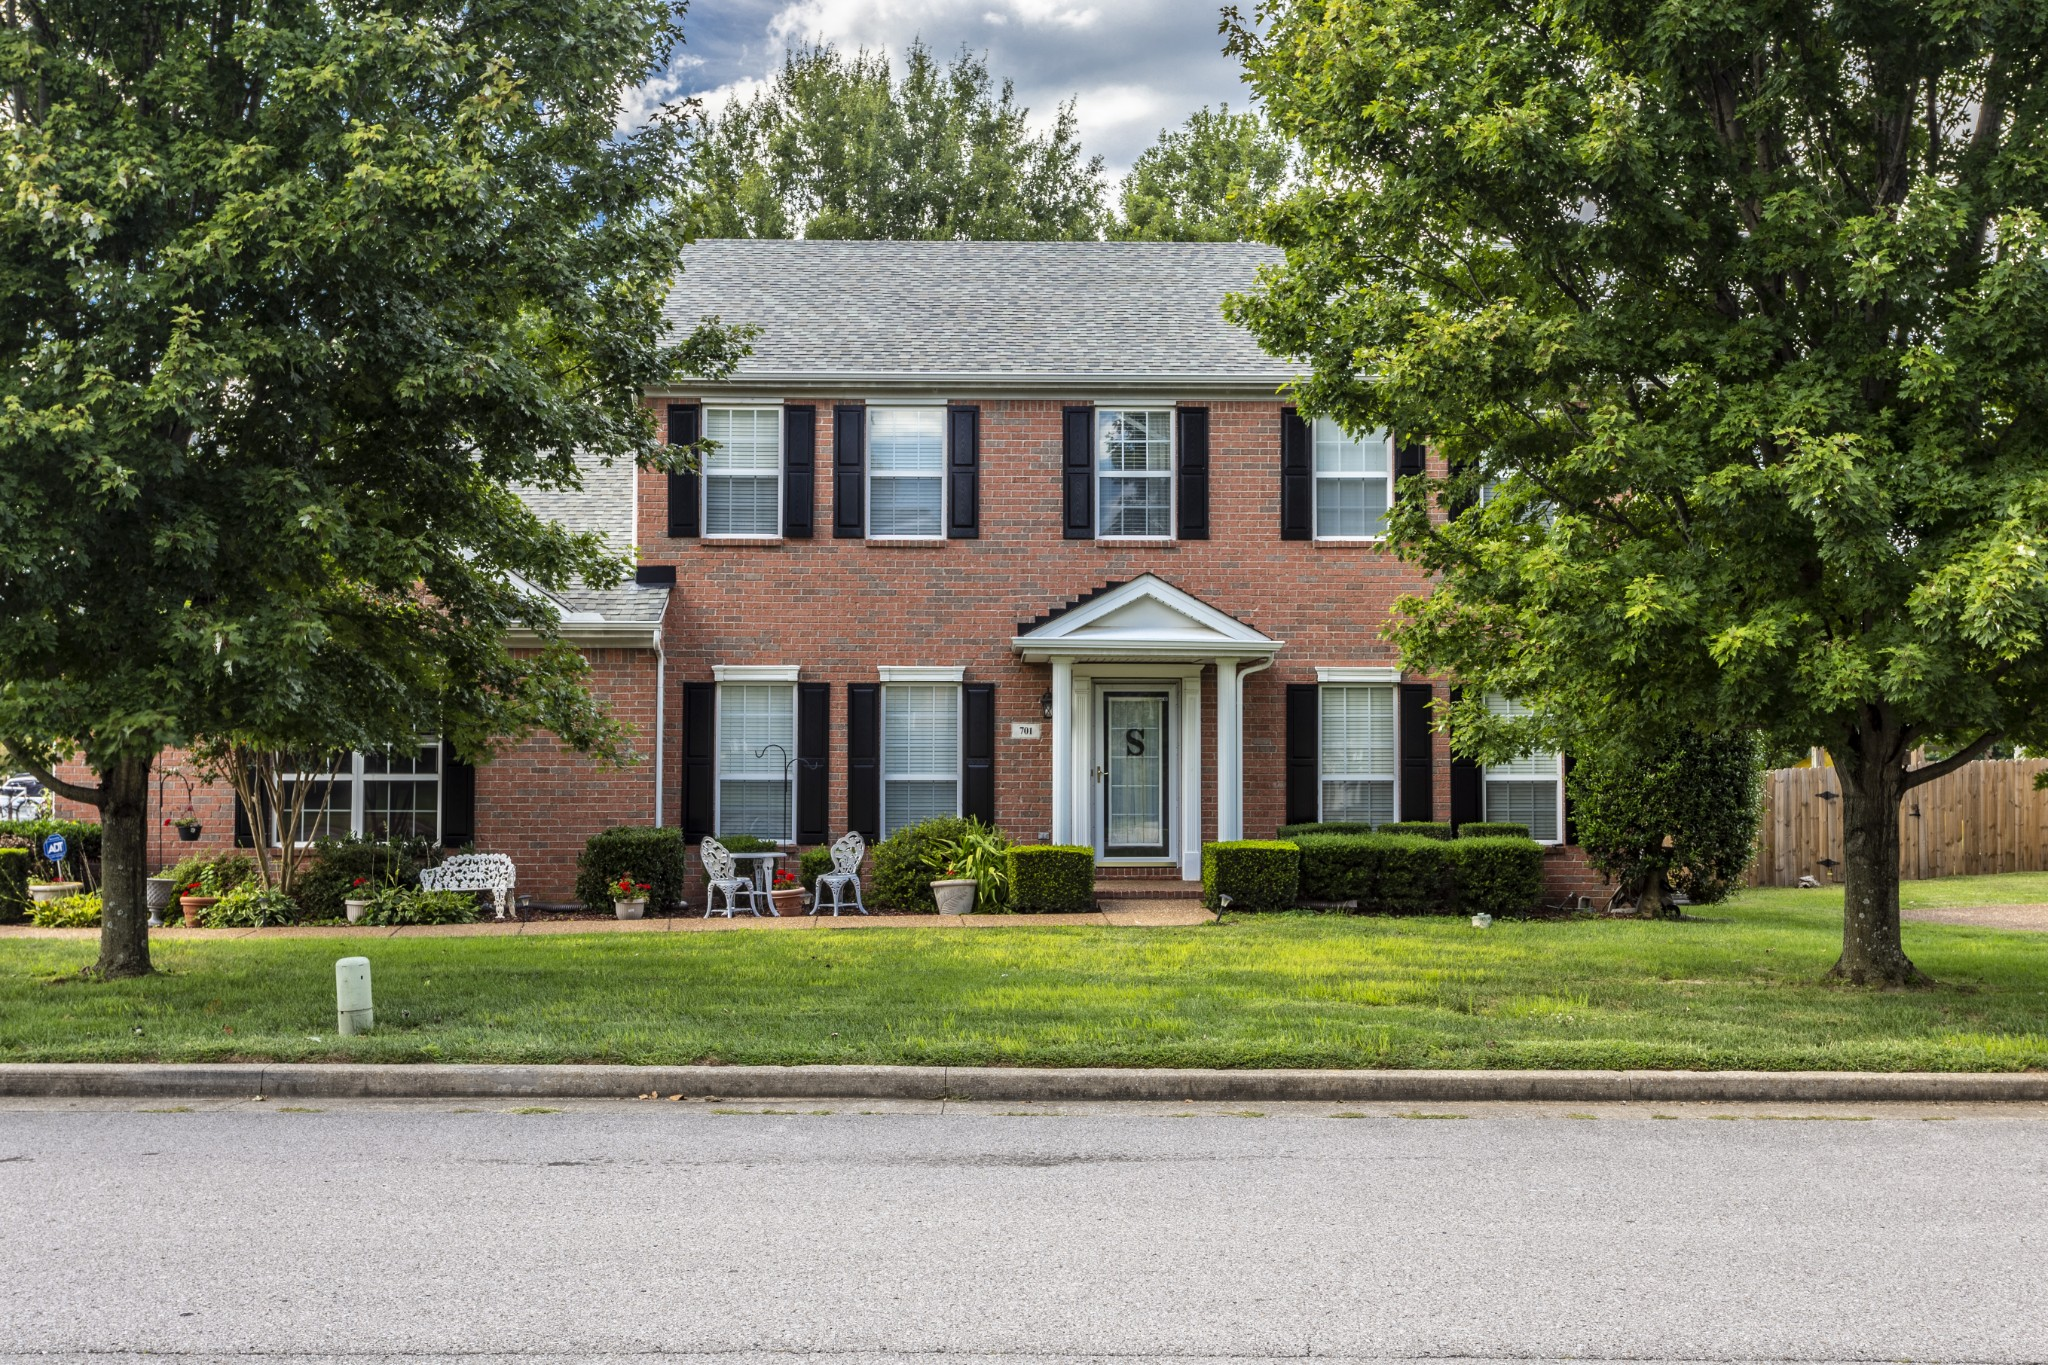 701 N Wickshire Way, Brentwood, TN 37027 - Brentwood, TN real estate listing